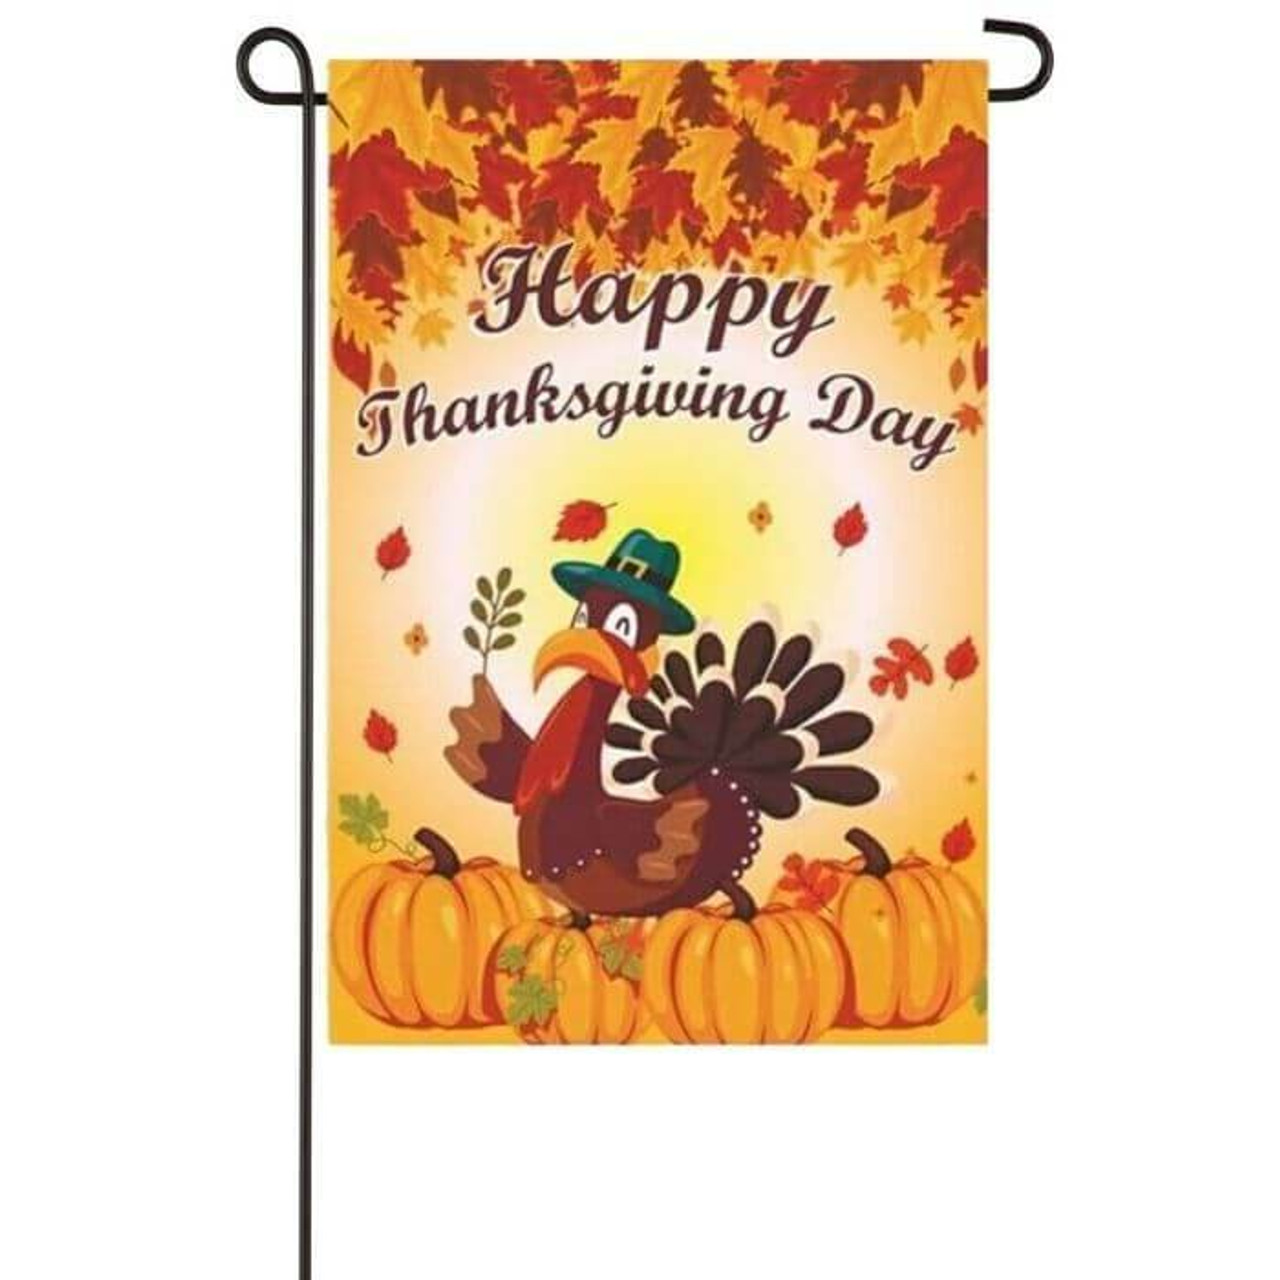 """This garden flag has an orange background with different colored leaves at the top and pumpkins at the bottom with a turkey sitting on top o them. The turkey is wearing a green top hat while holding a leaf and above the turkey, it says """"Happy Thanksgiving Day!"""" in brown."""